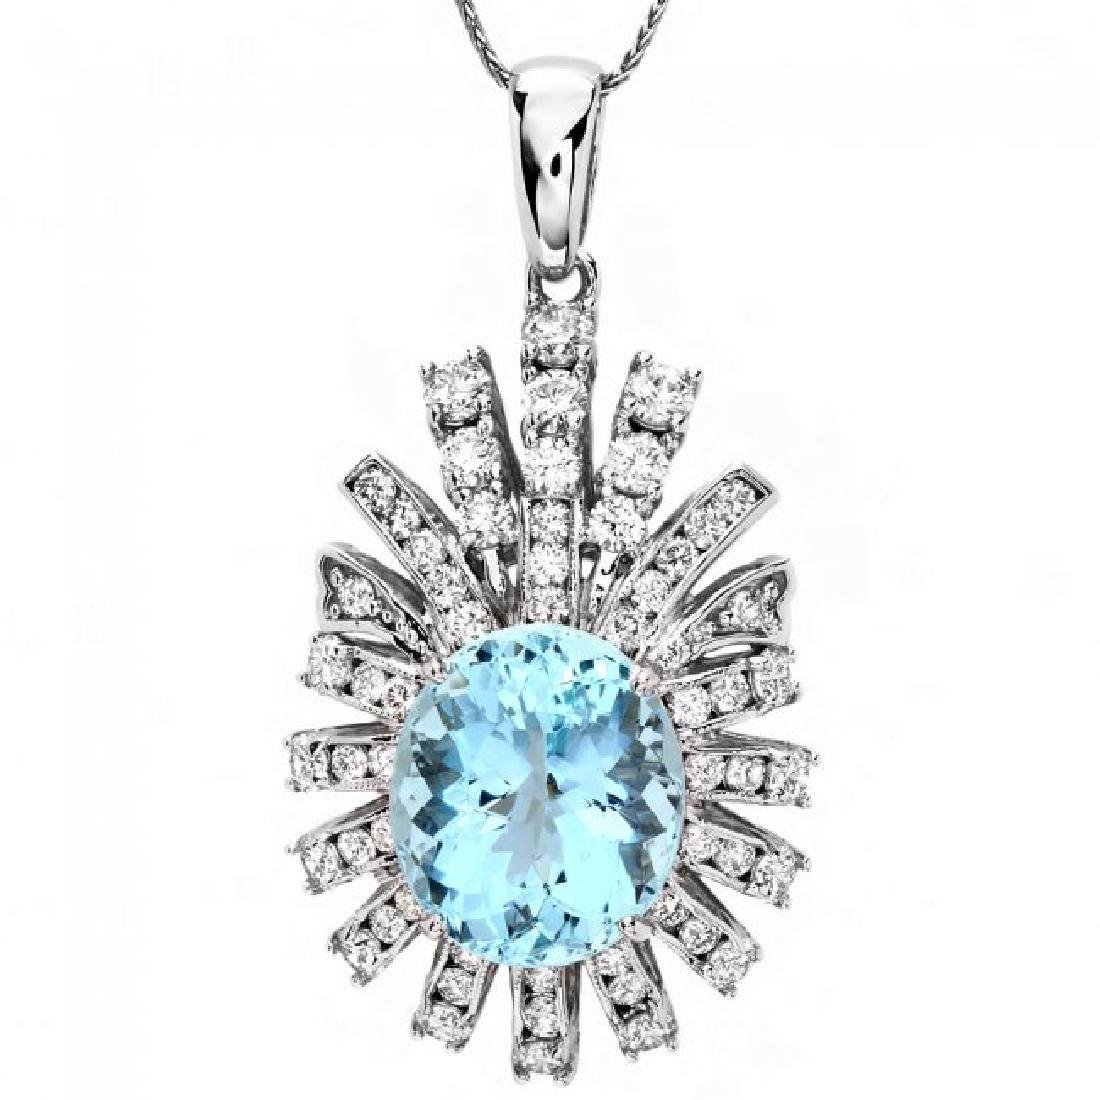 14k Gold 8ct Aquamarine 2.50ct Diamond Pendant - 2